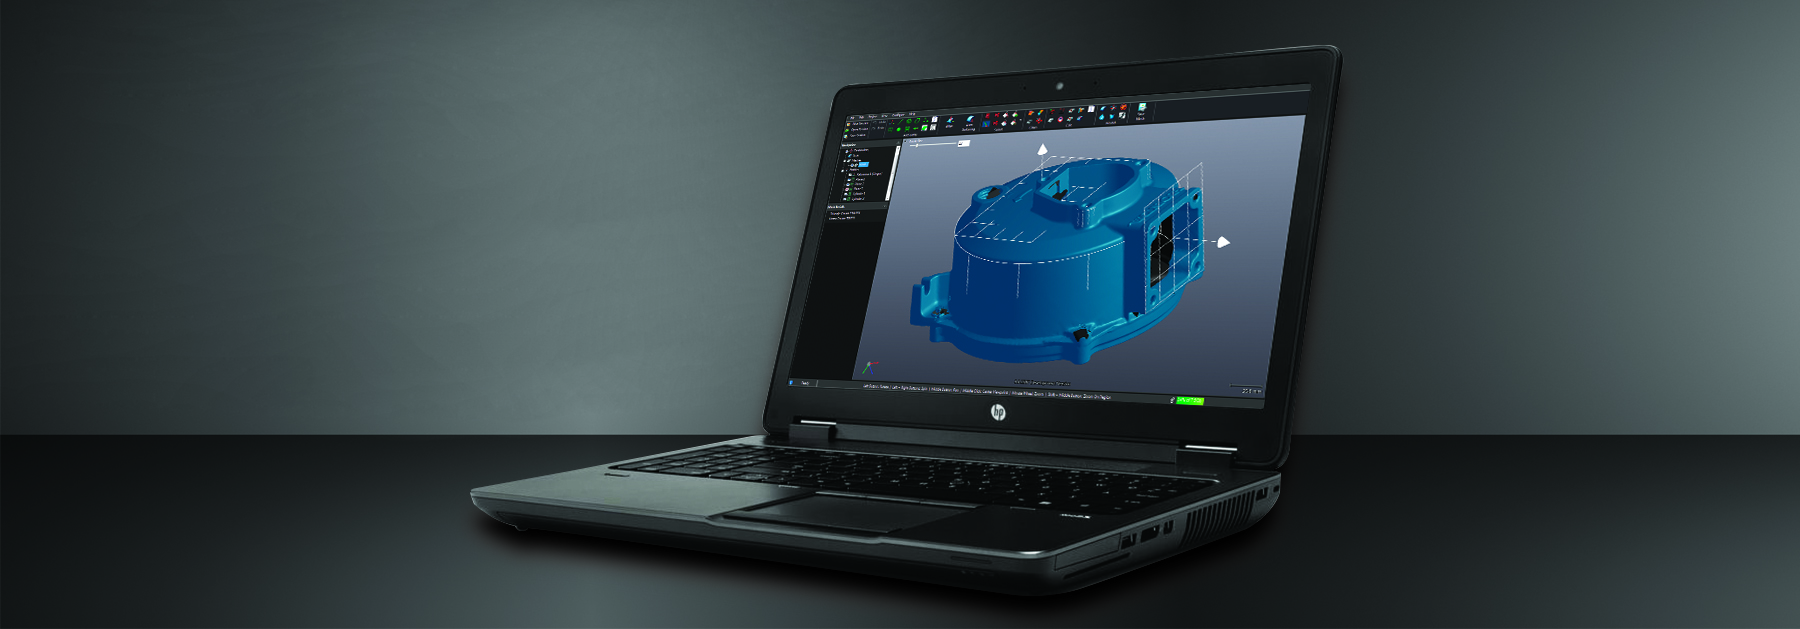 Creaform introduces VXmodel 3D Scan-to-CAD software